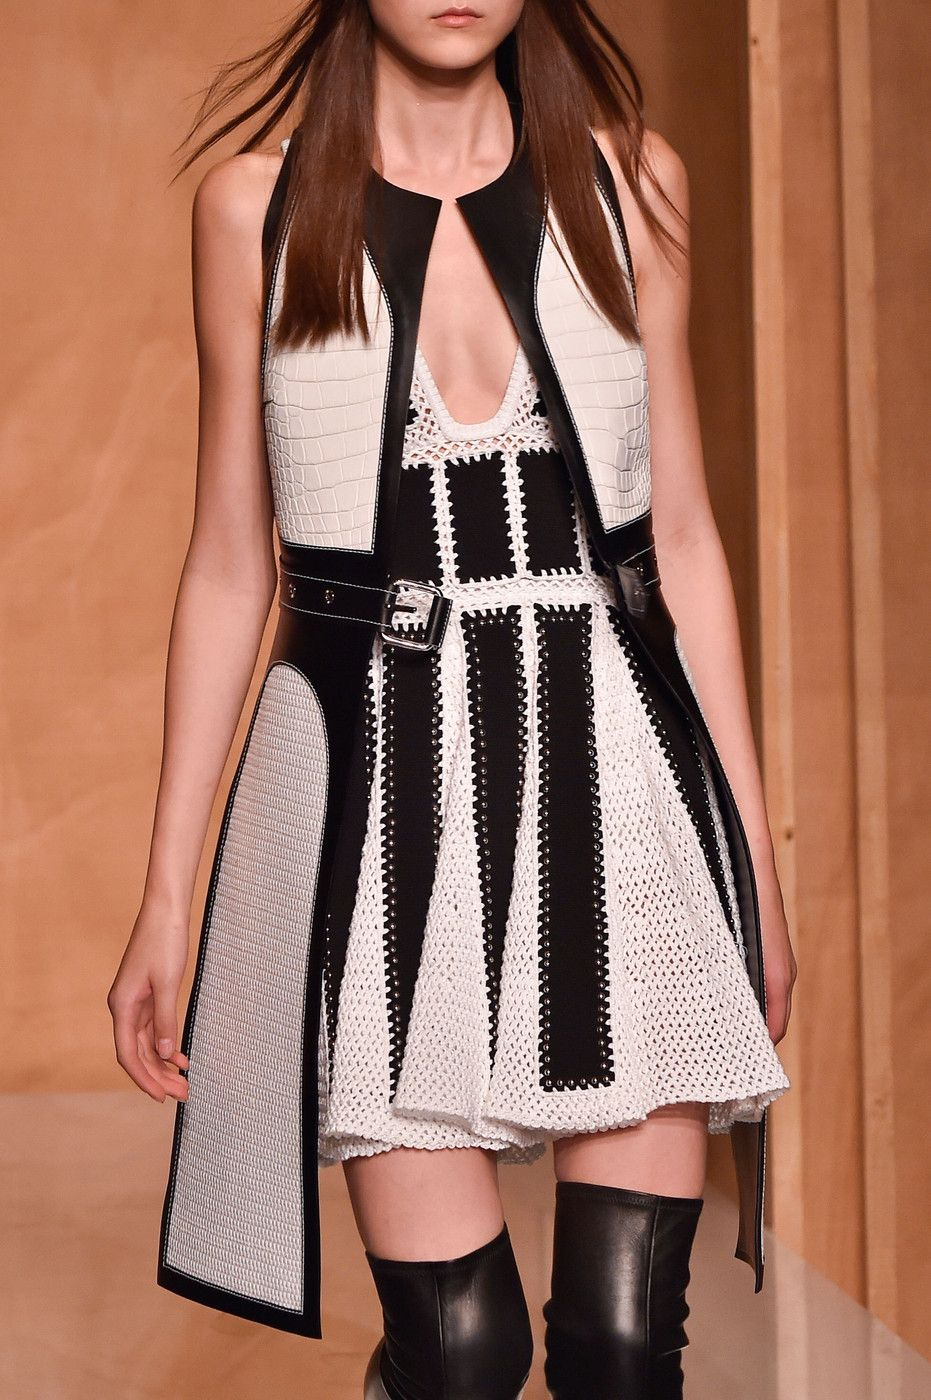 Givenchy Spring 2015 Runway Pictures - StyleBistro